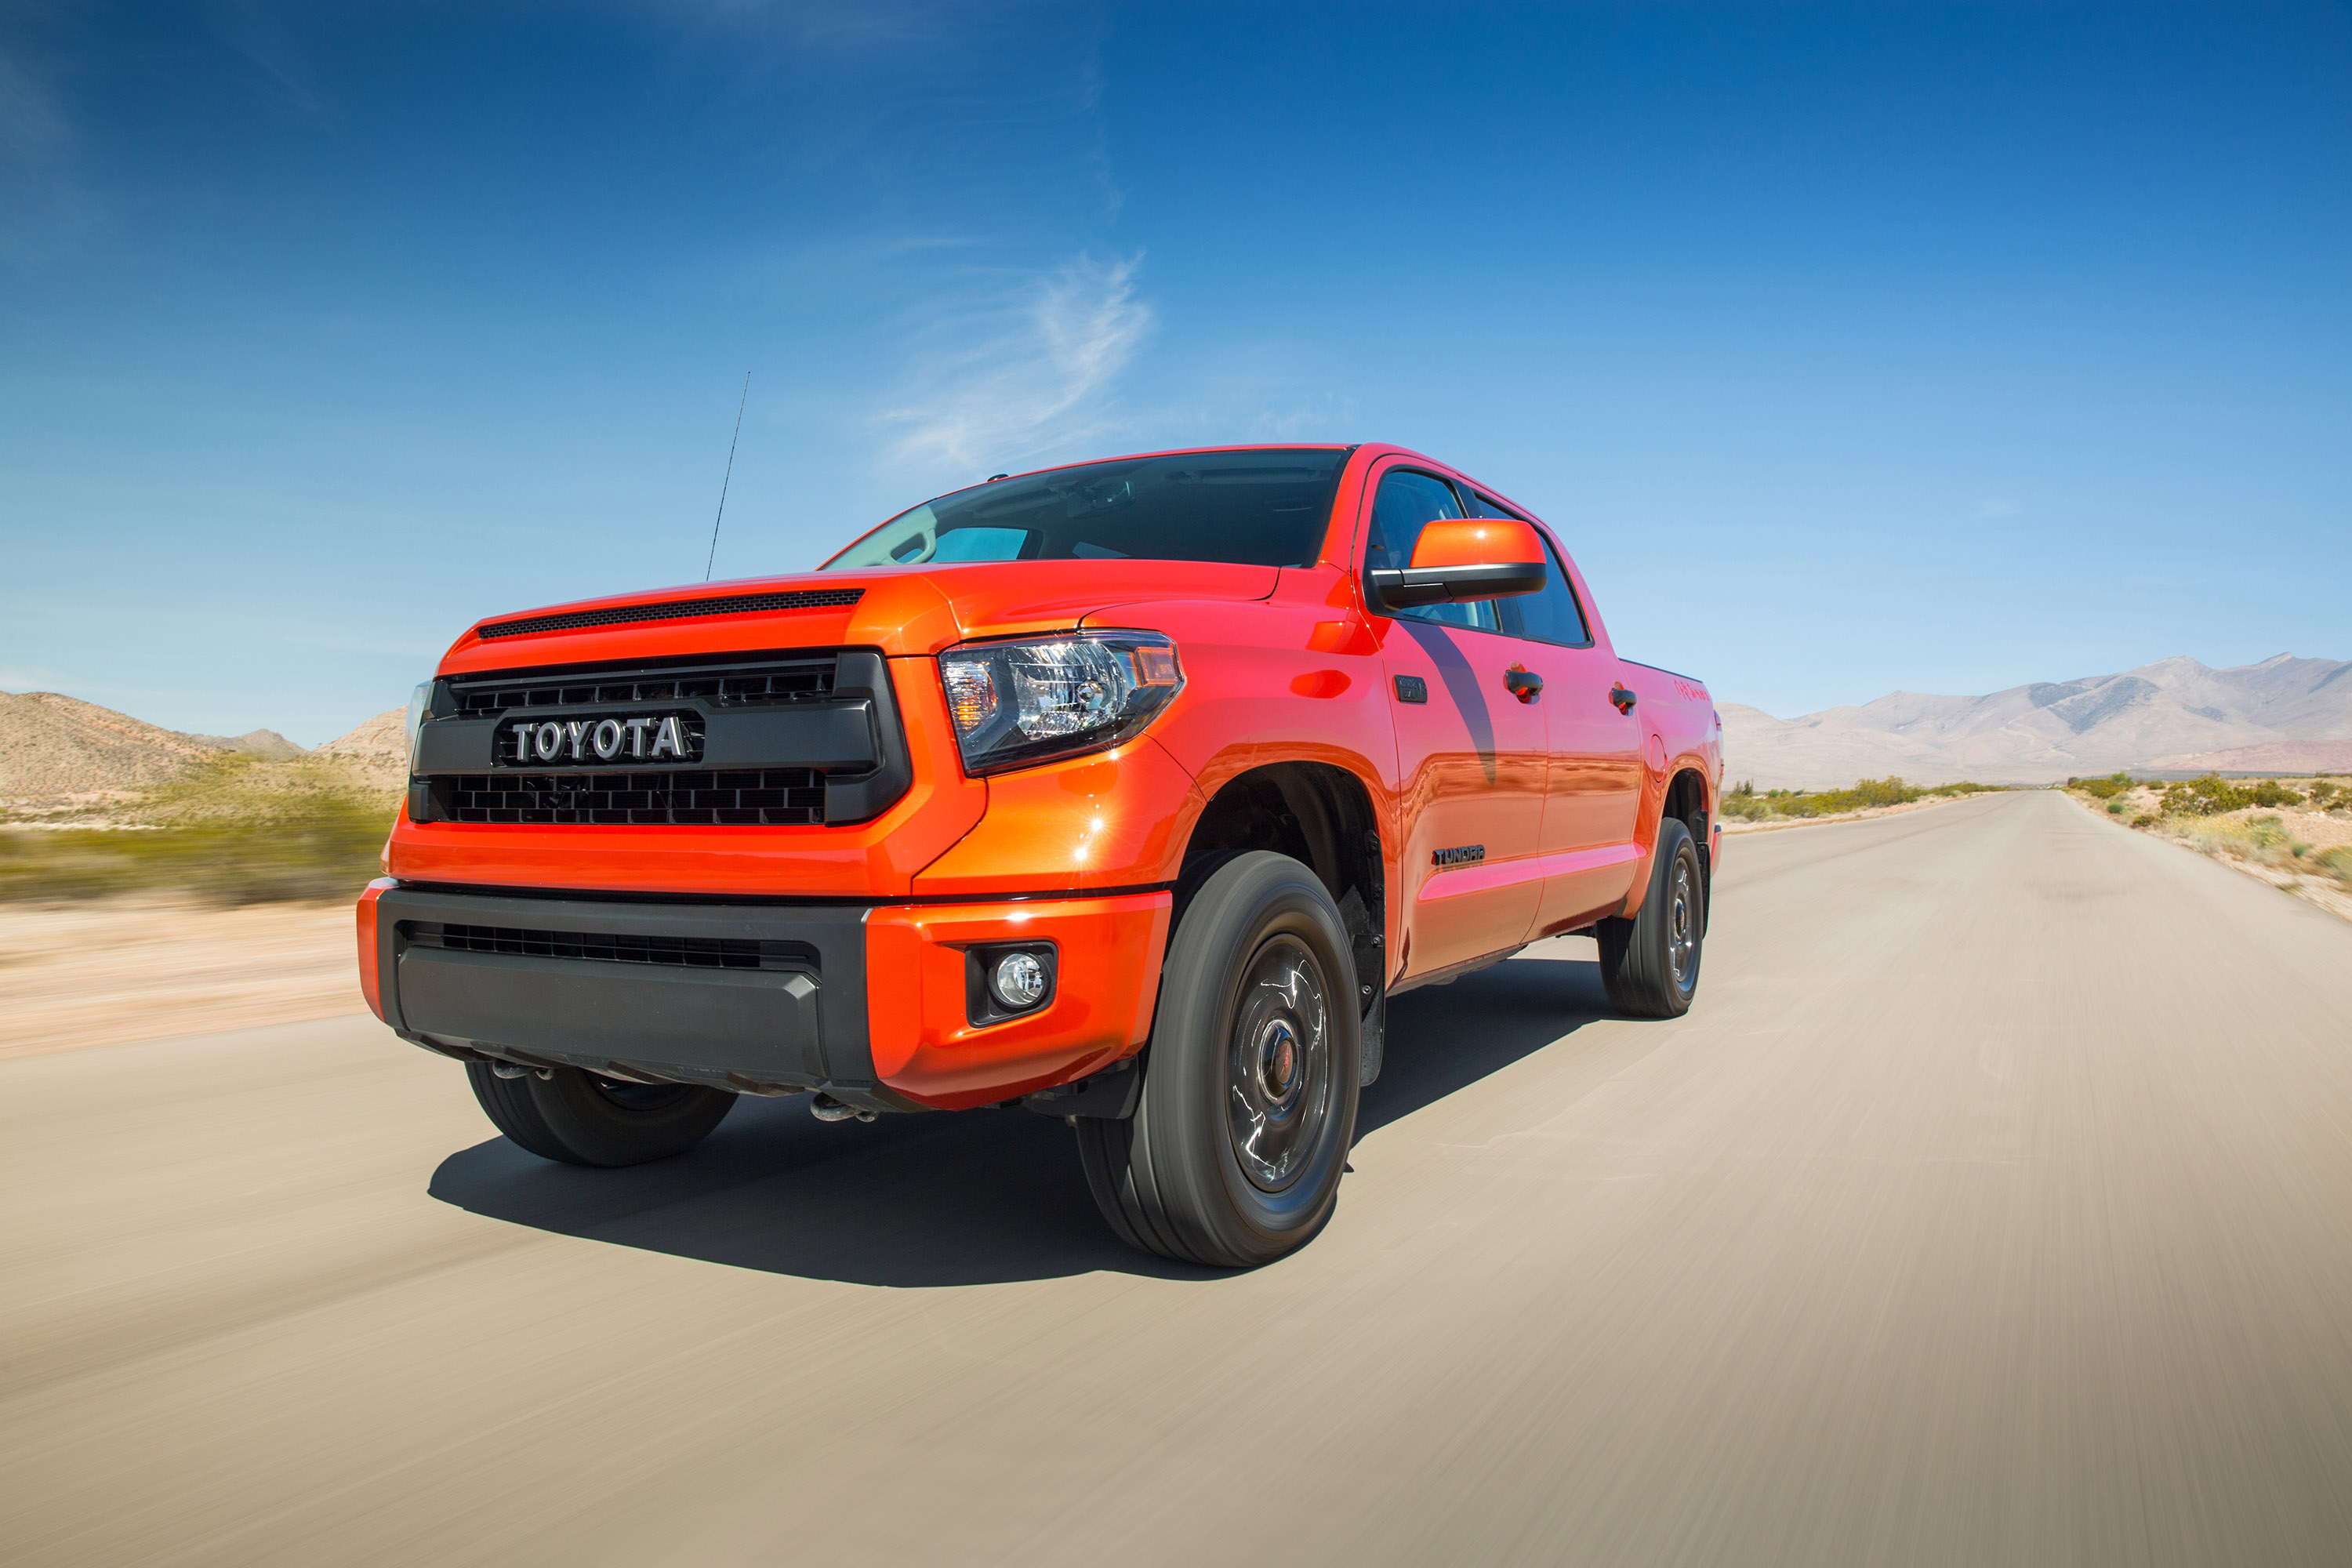 Toyota publishes pricing for all-new TRD Pro Series Tundra